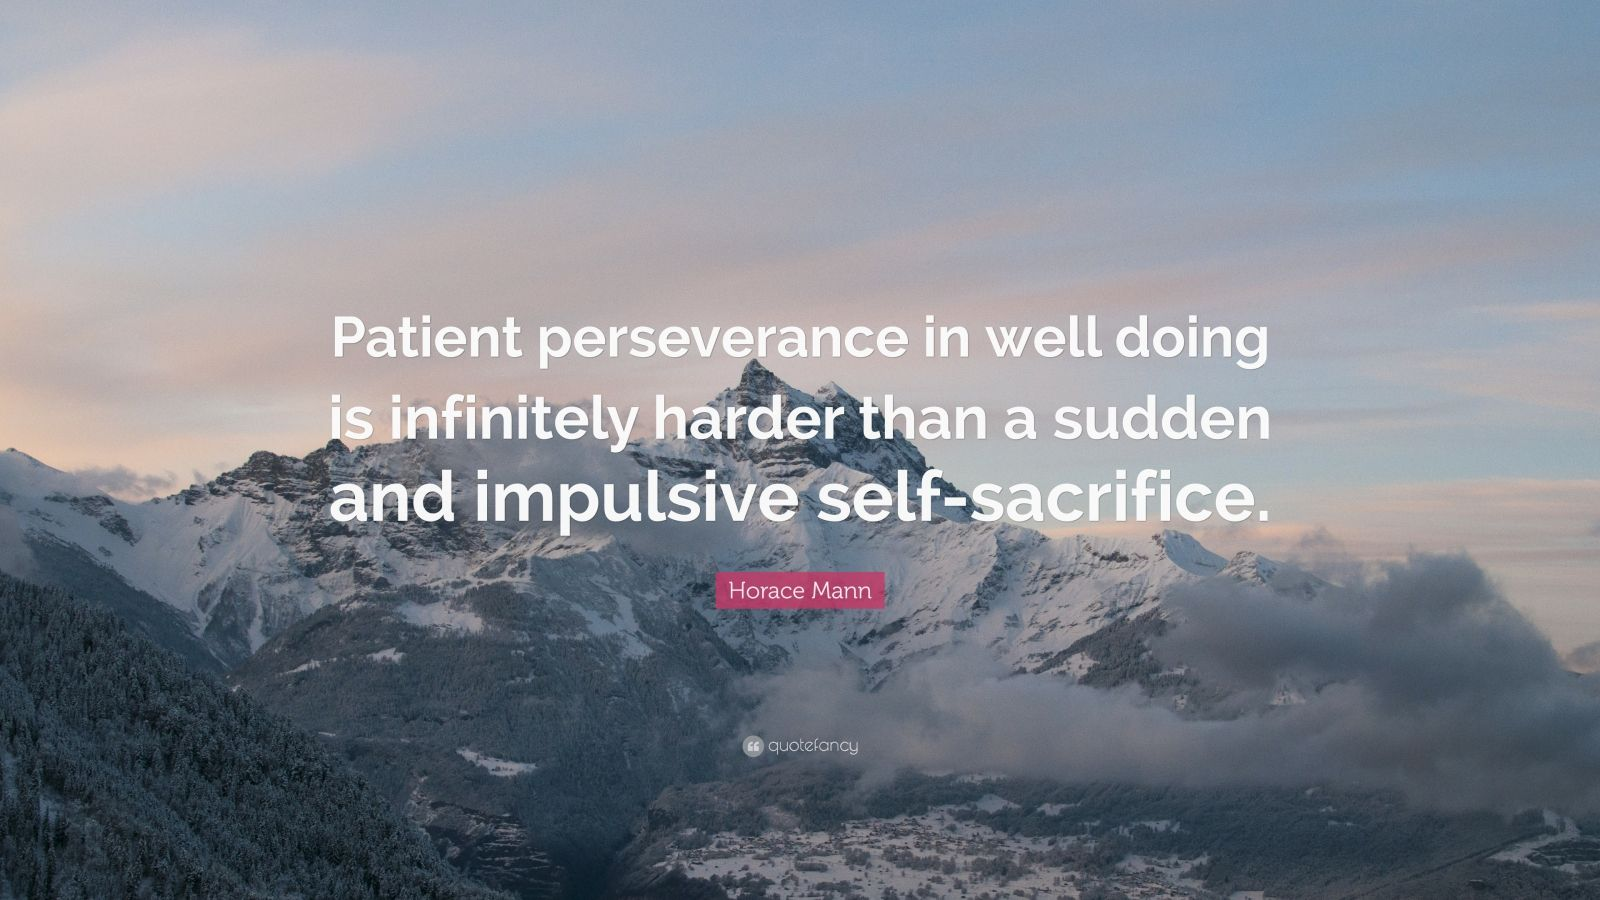 """Horace Mann Quote: """"Patient perseverance in well doing is infinitely harder than a sudden and impulsive self-sacrifice."""""""